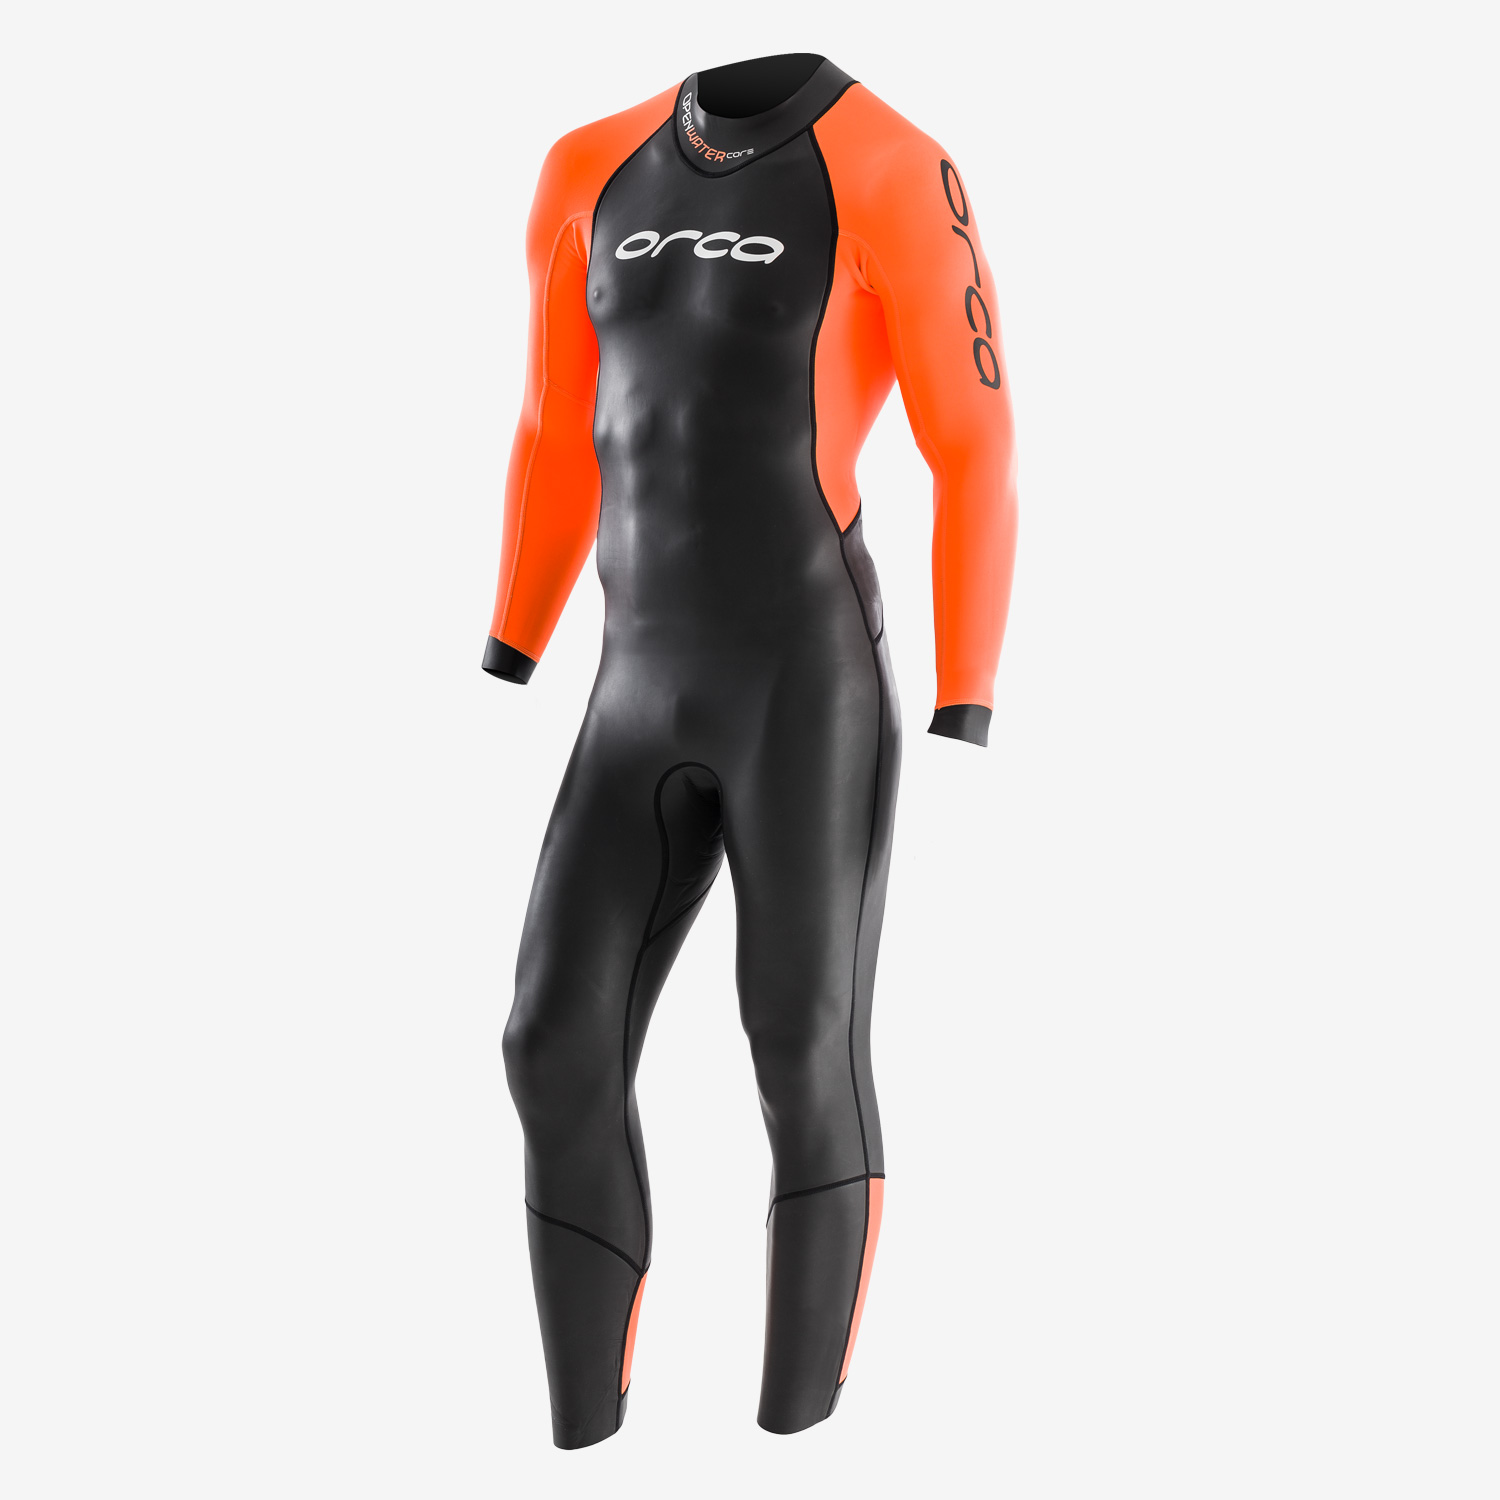 ORCA CORE ONE PIECE OPENWATER WETSUIT